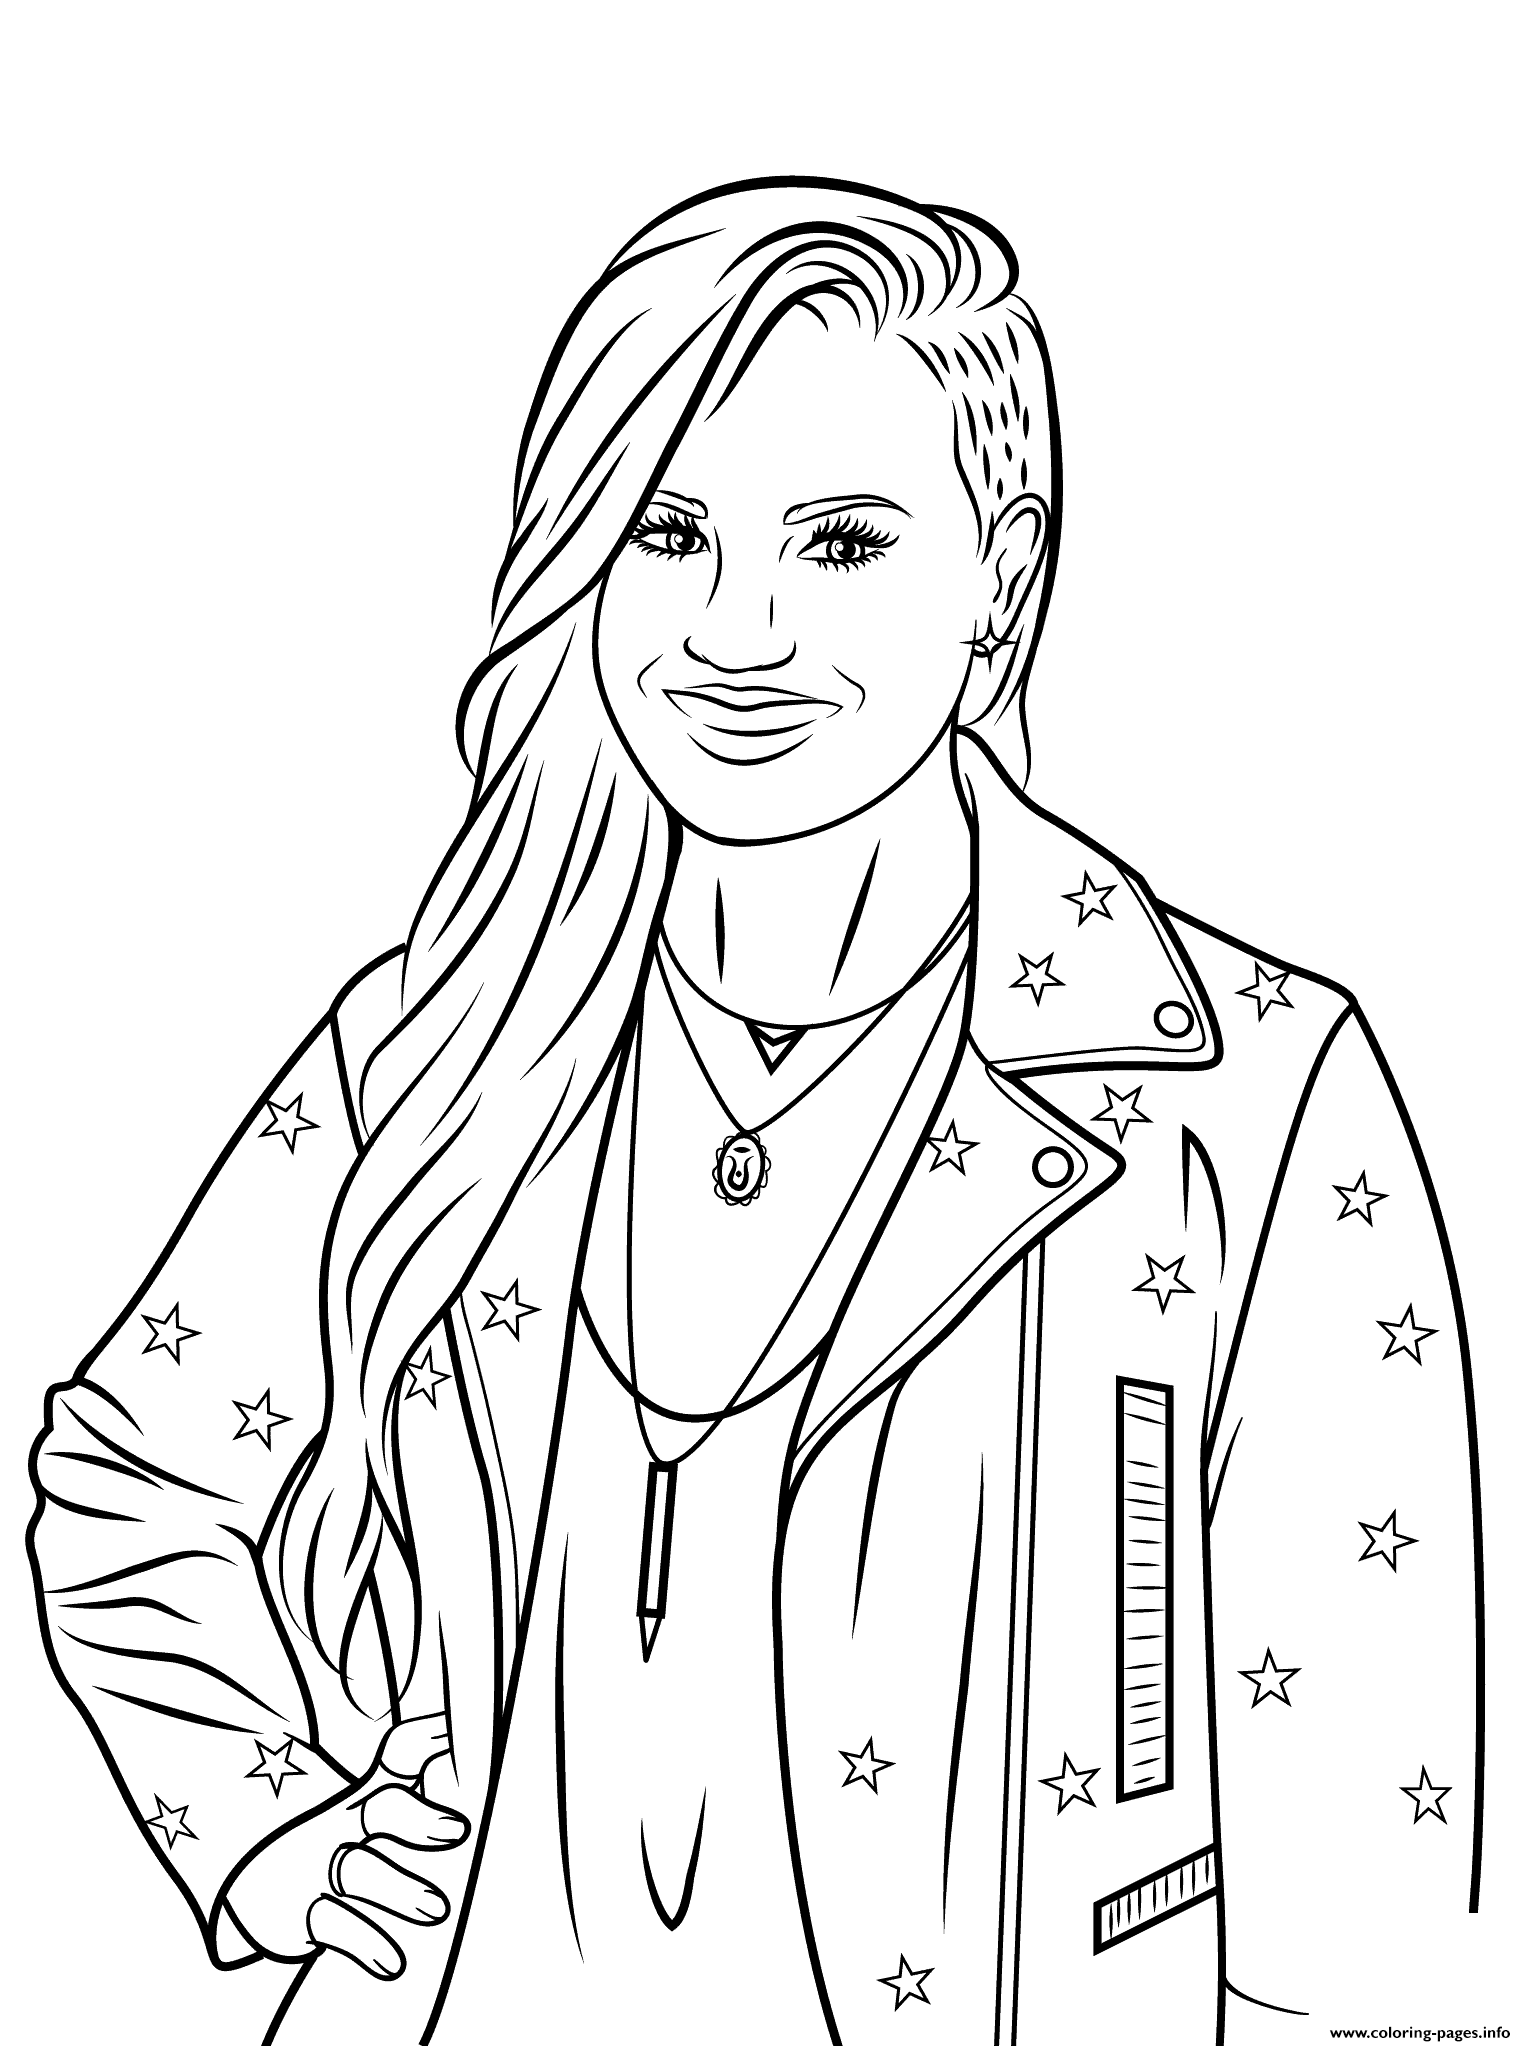 demi lovato celebrity coloring pages - Celebrity Coloring Pages